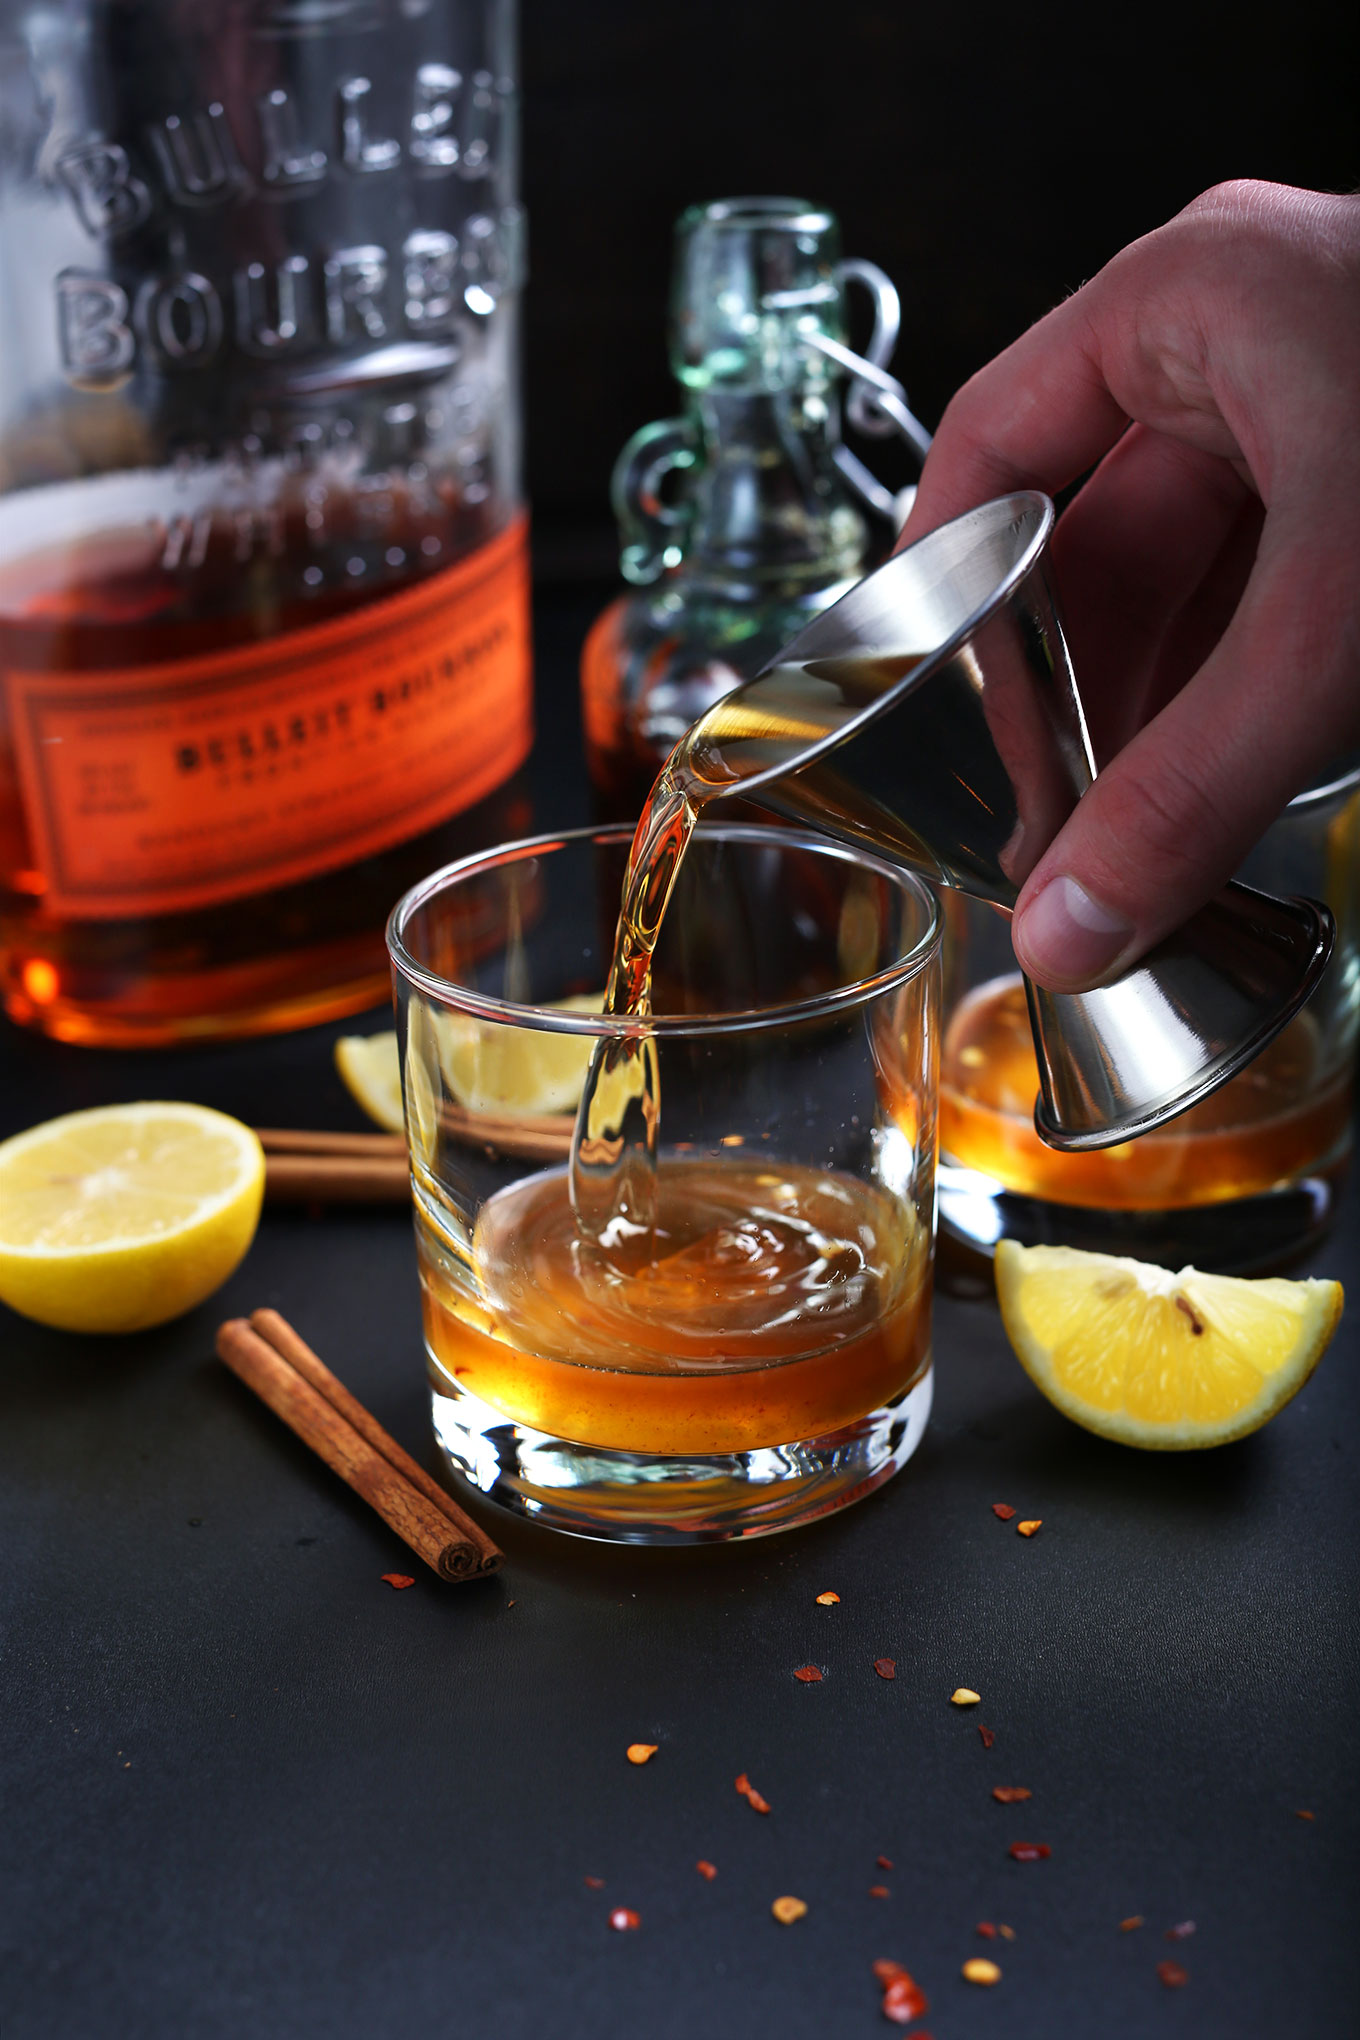 Pouring bourbon into a glass for making a homemade naturally-sweetened Hot Toddy